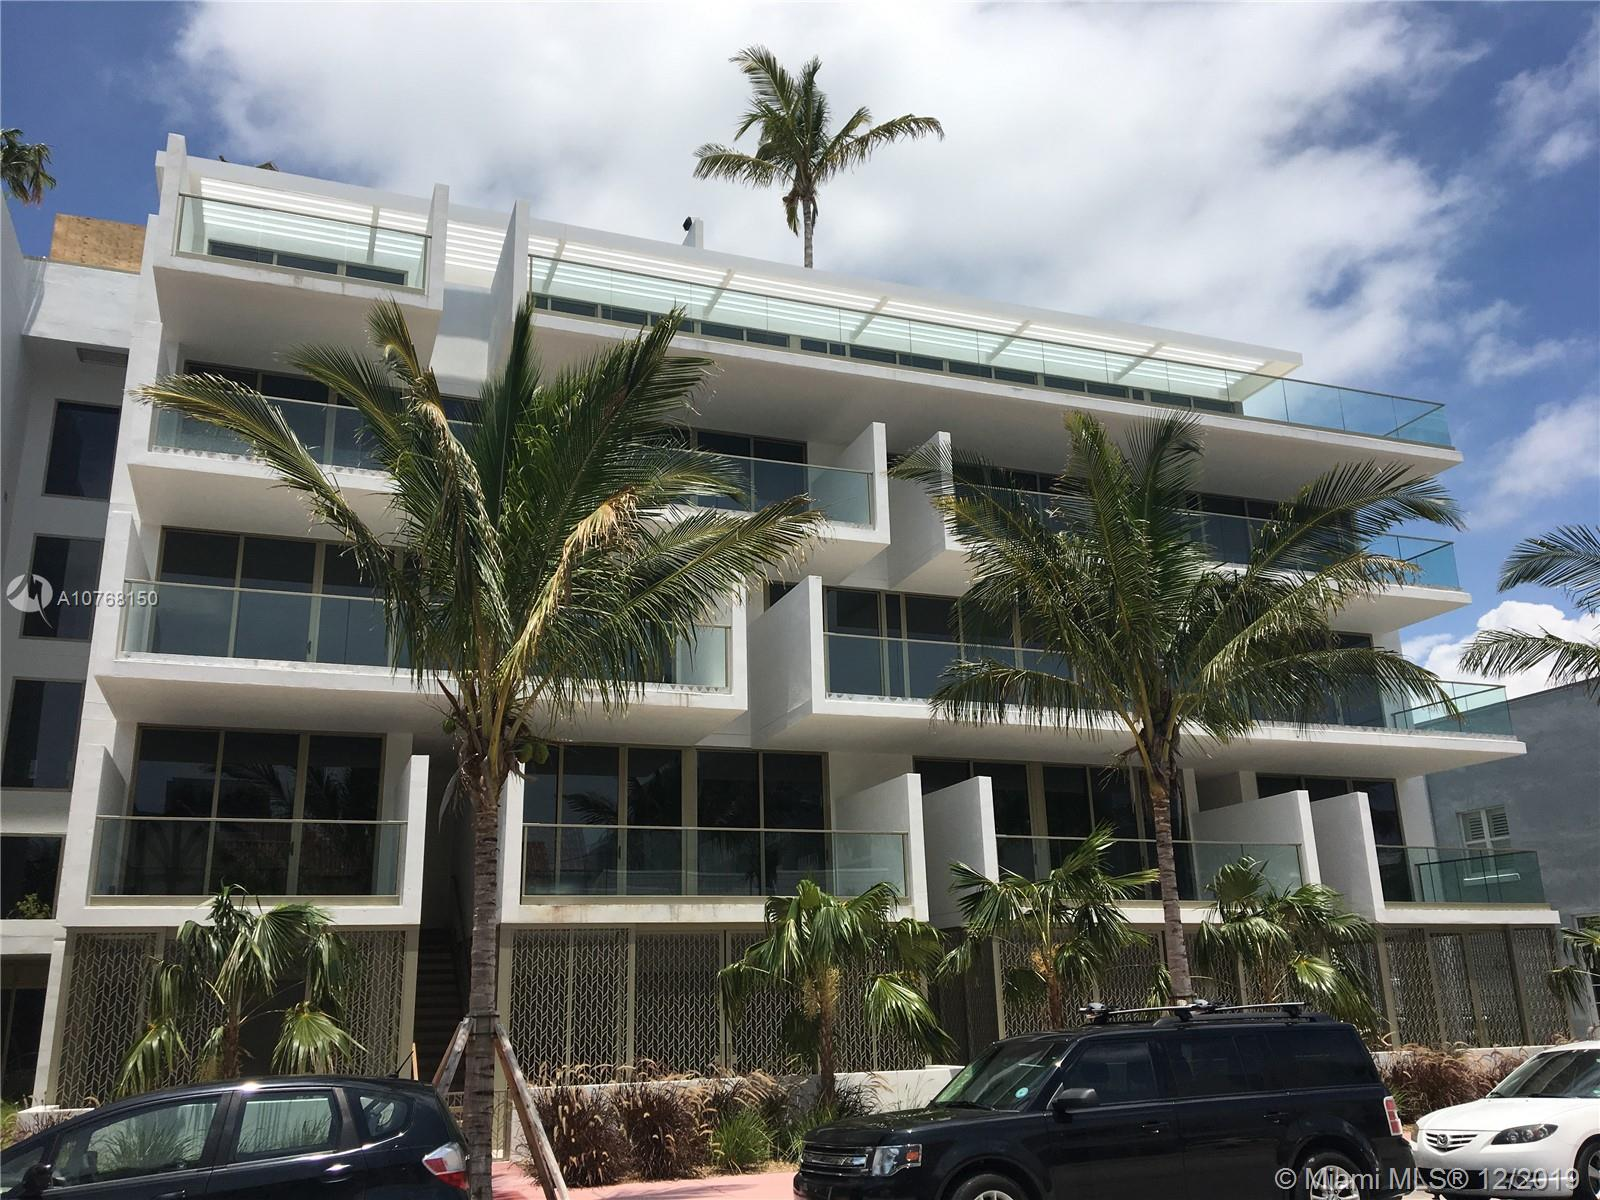 Spacious unit  in luxury building in the exclusive area of  SOFI  featuring wood floors, huge balcony , stainless steel high end appliances and one parking space garage ,rooftop pool, exercise room.